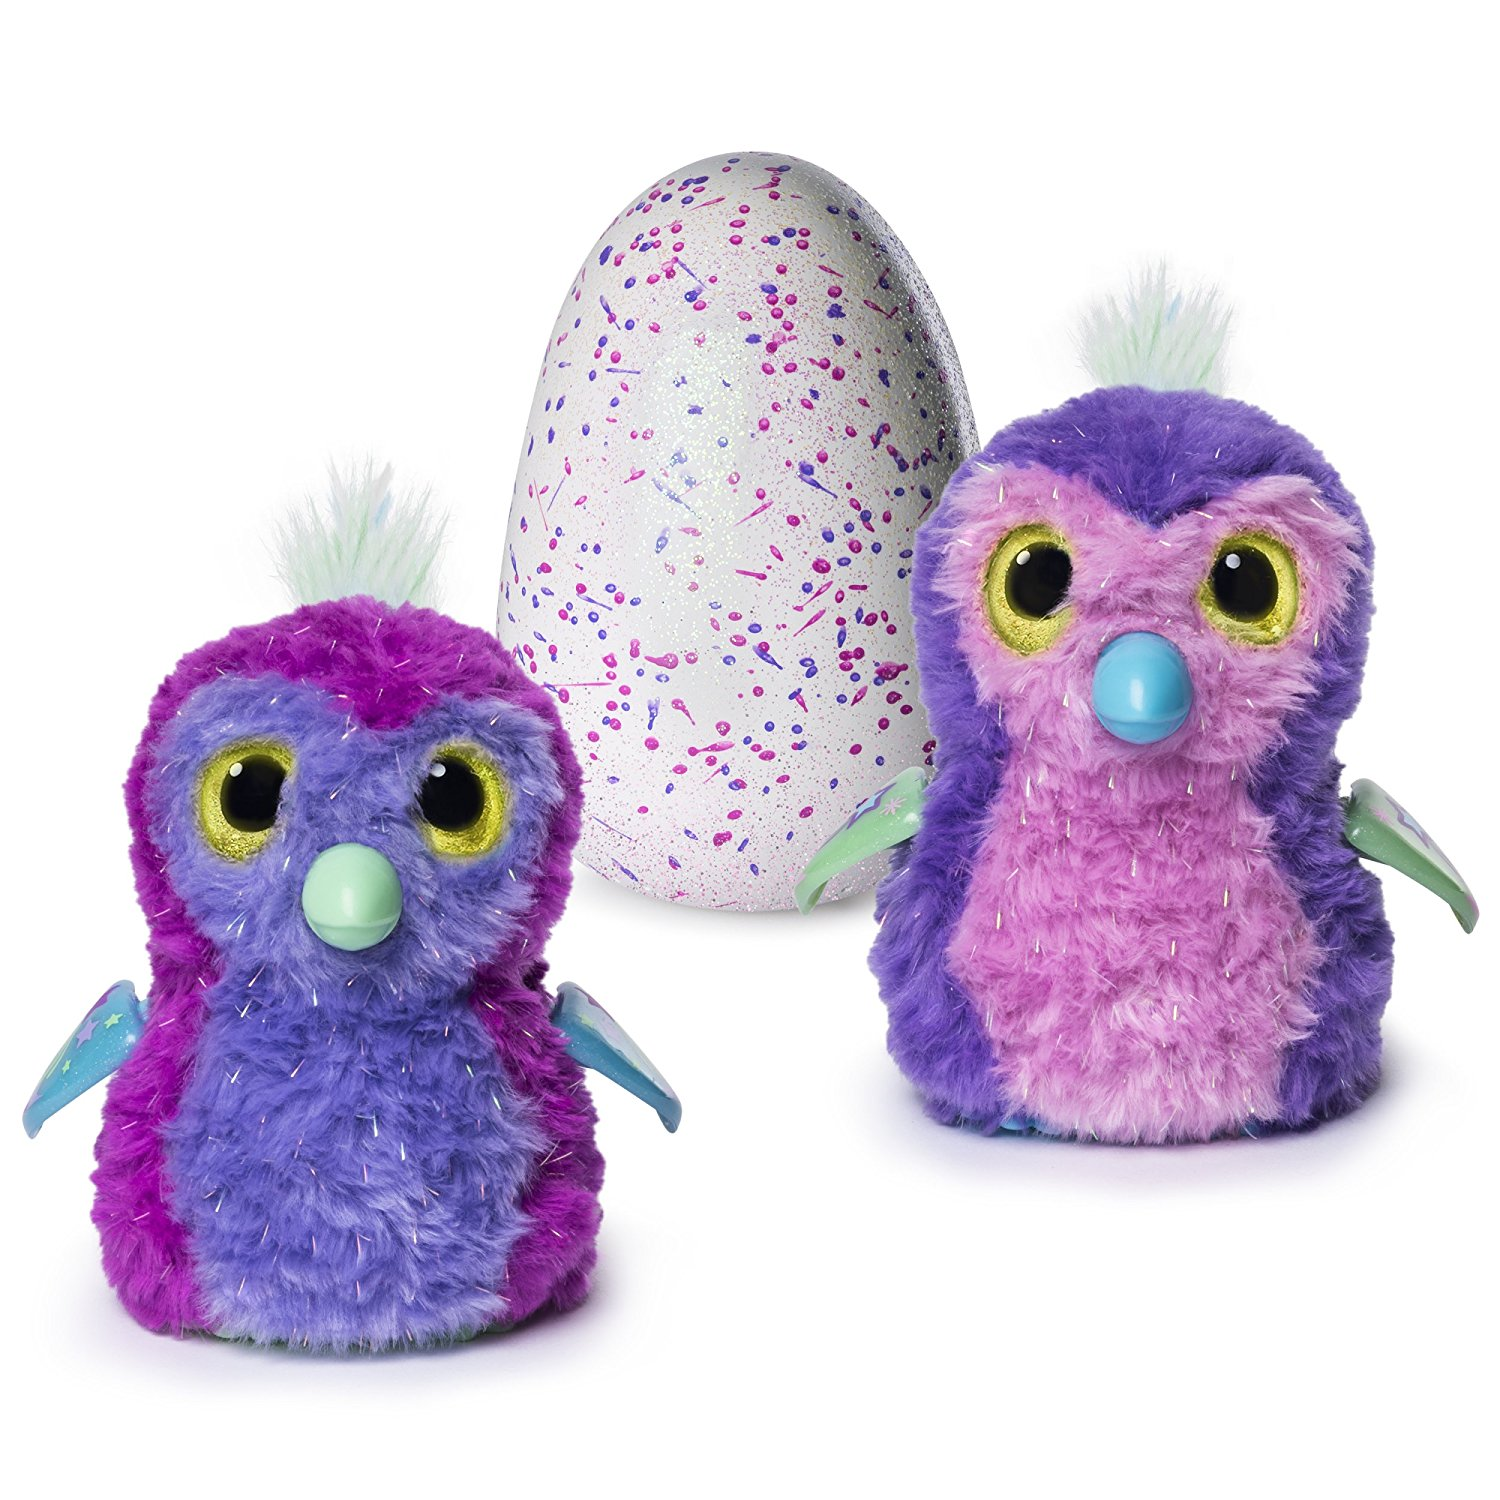 Glittering Garden - Hatching Egg - Interactive Creature - Sparkly Penguala by Spin Master By Hatchimals